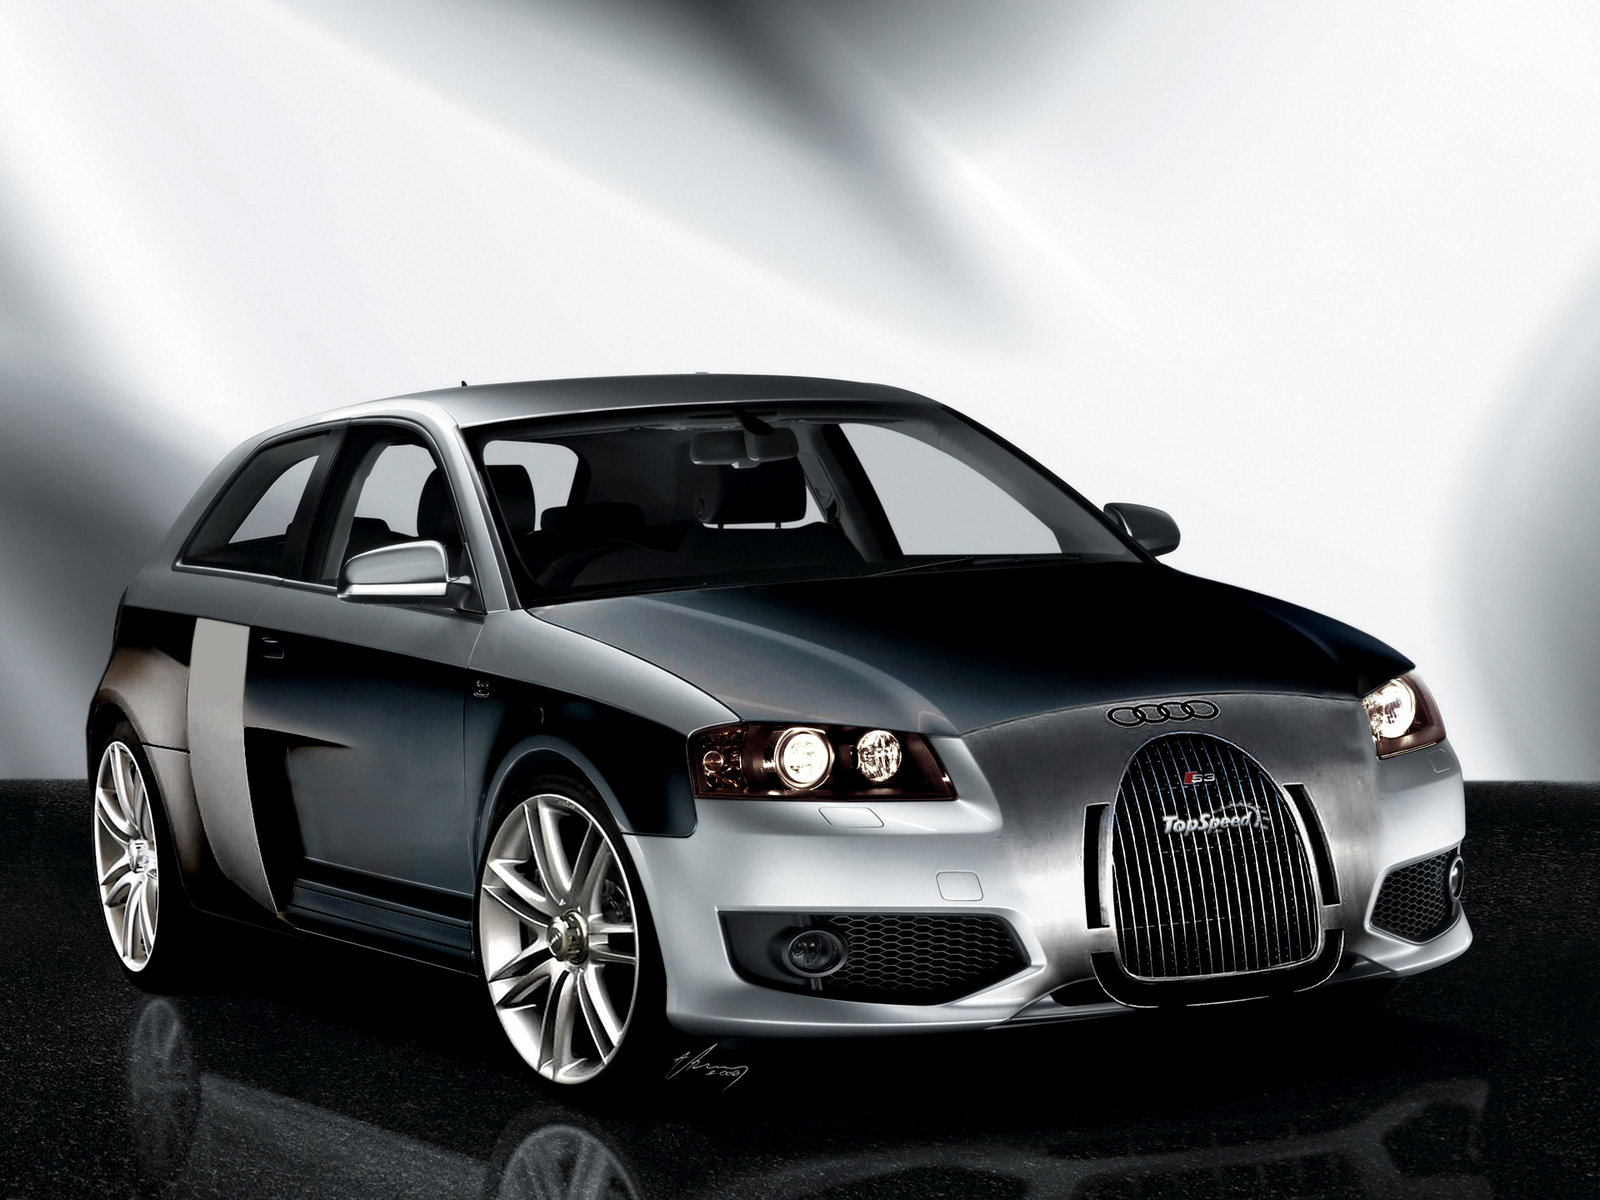 2007 audi s3 picture 90550 car review top speed. Black Bedroom Furniture Sets. Home Design Ideas